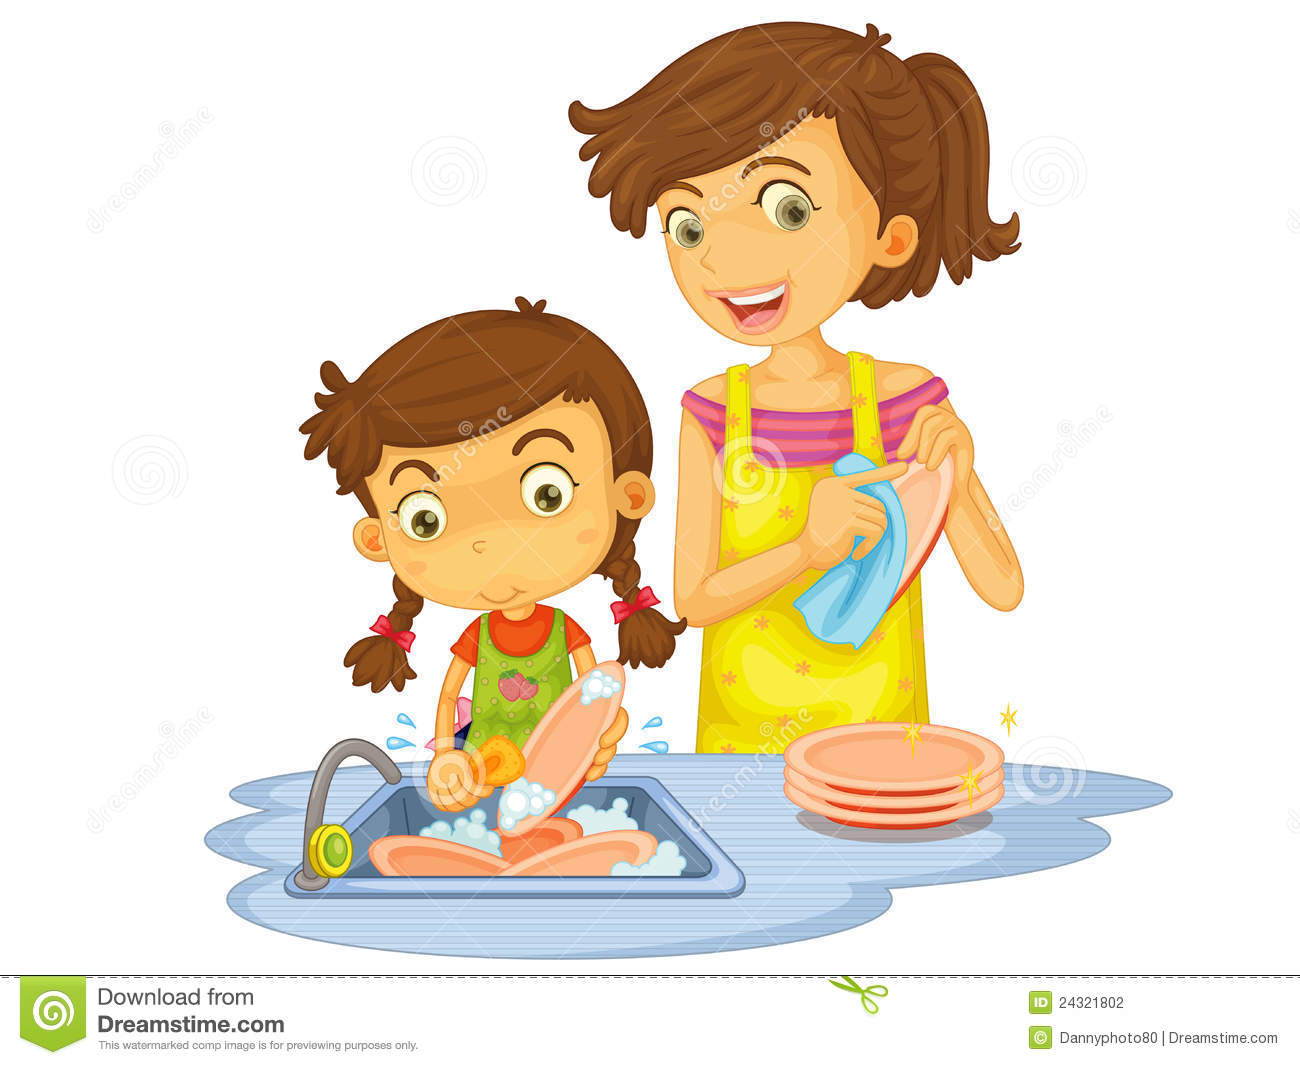 Washing dishes by hand clipart.